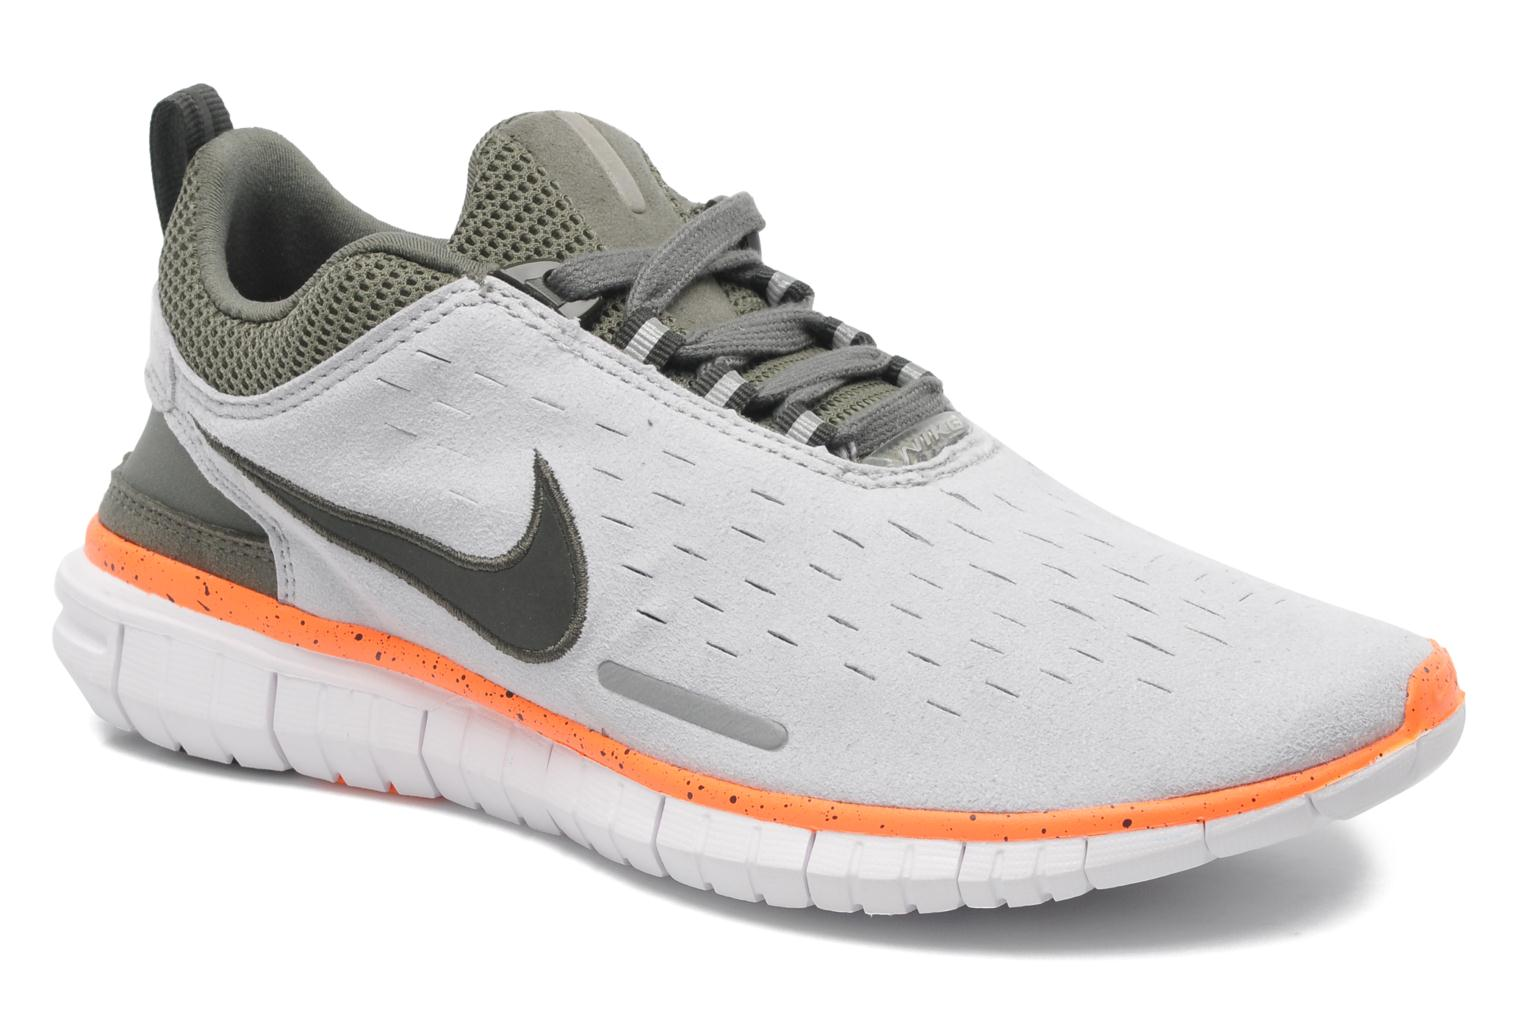 cheap for discount c760a c1af6 Baskets Nike Nike Free Og Superior Gris vue détail paire